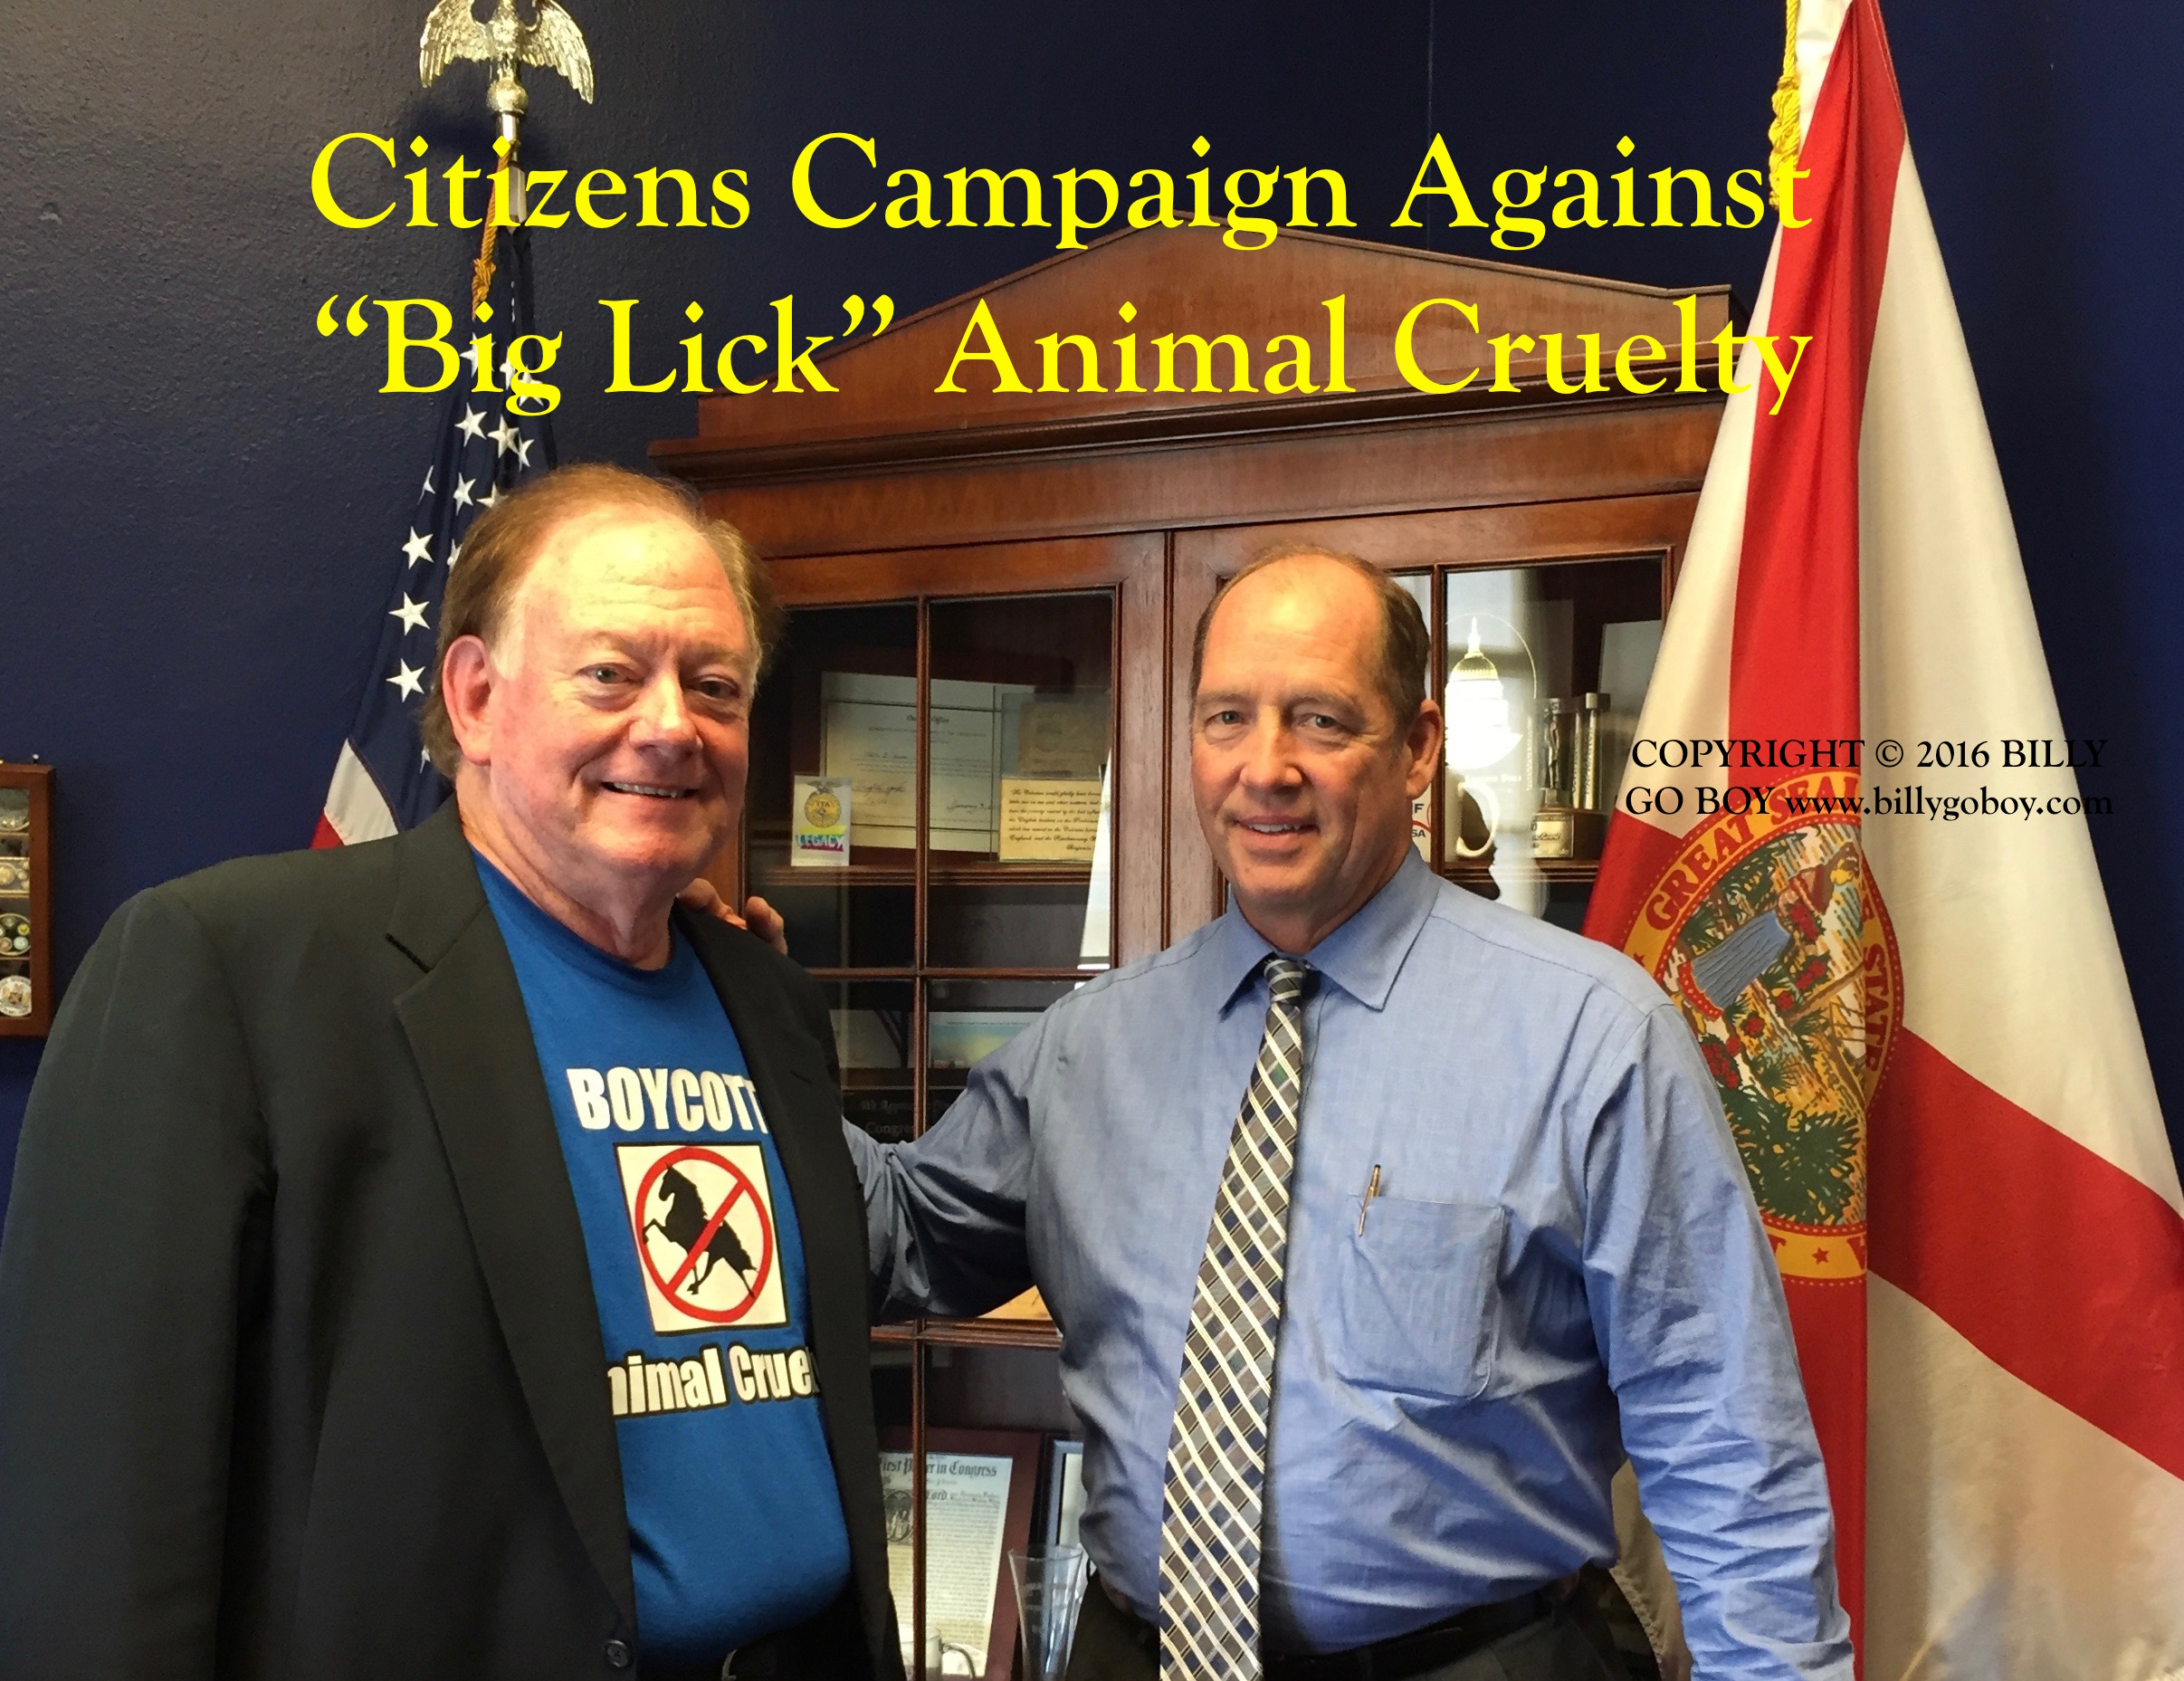 Clant M. Seay and U. S. Rep. Ted Yoho (R-FL)